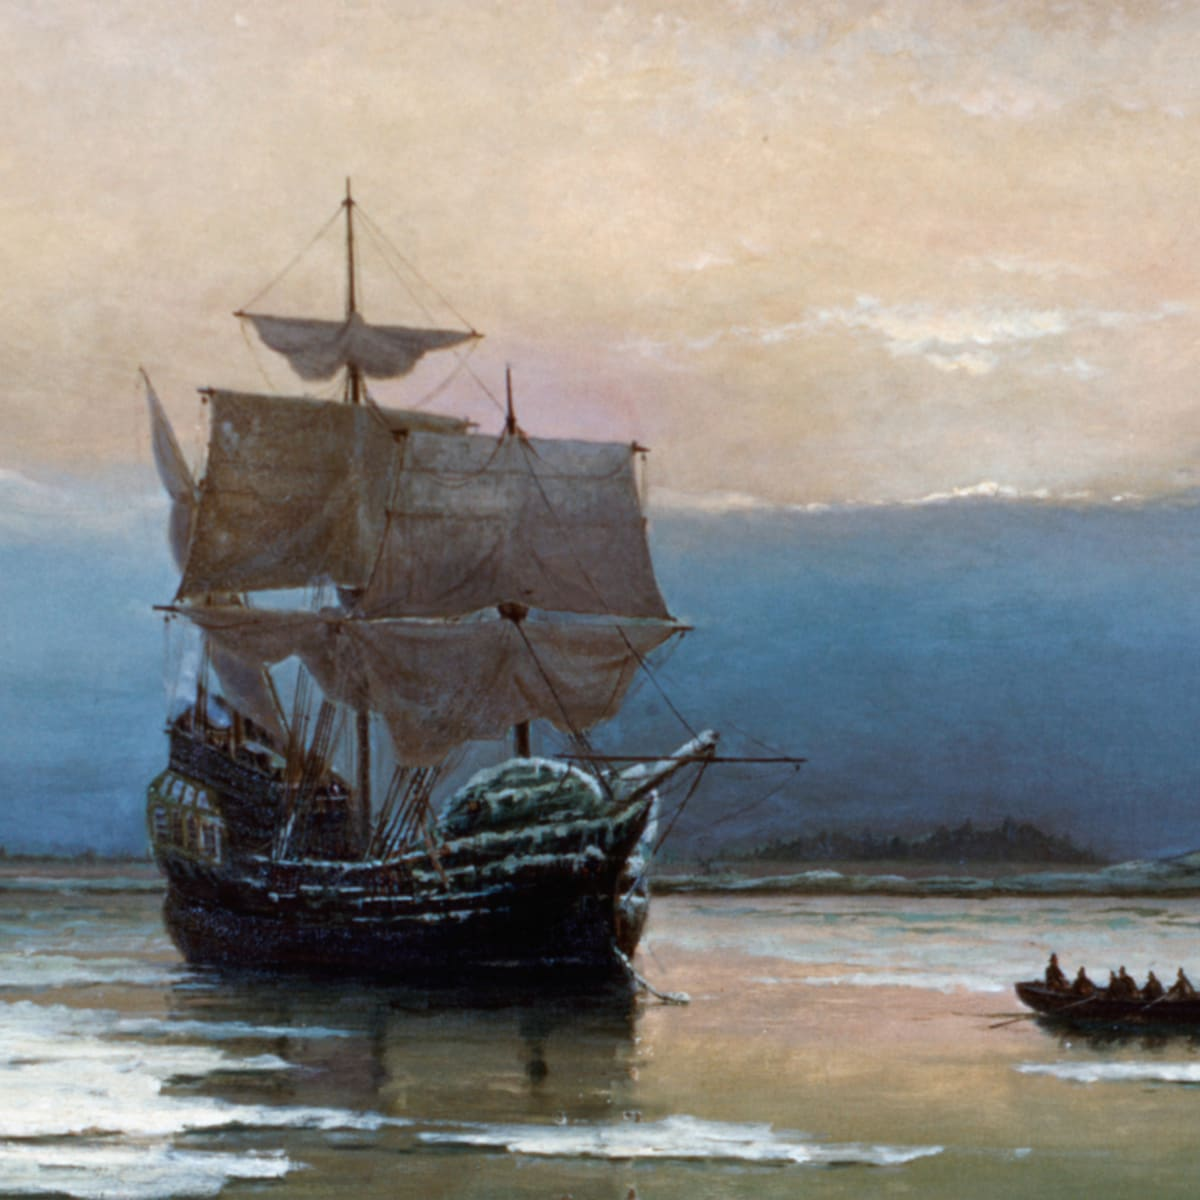 Chris Lascelles on The Forgotten, But Important, Mayflower Compact